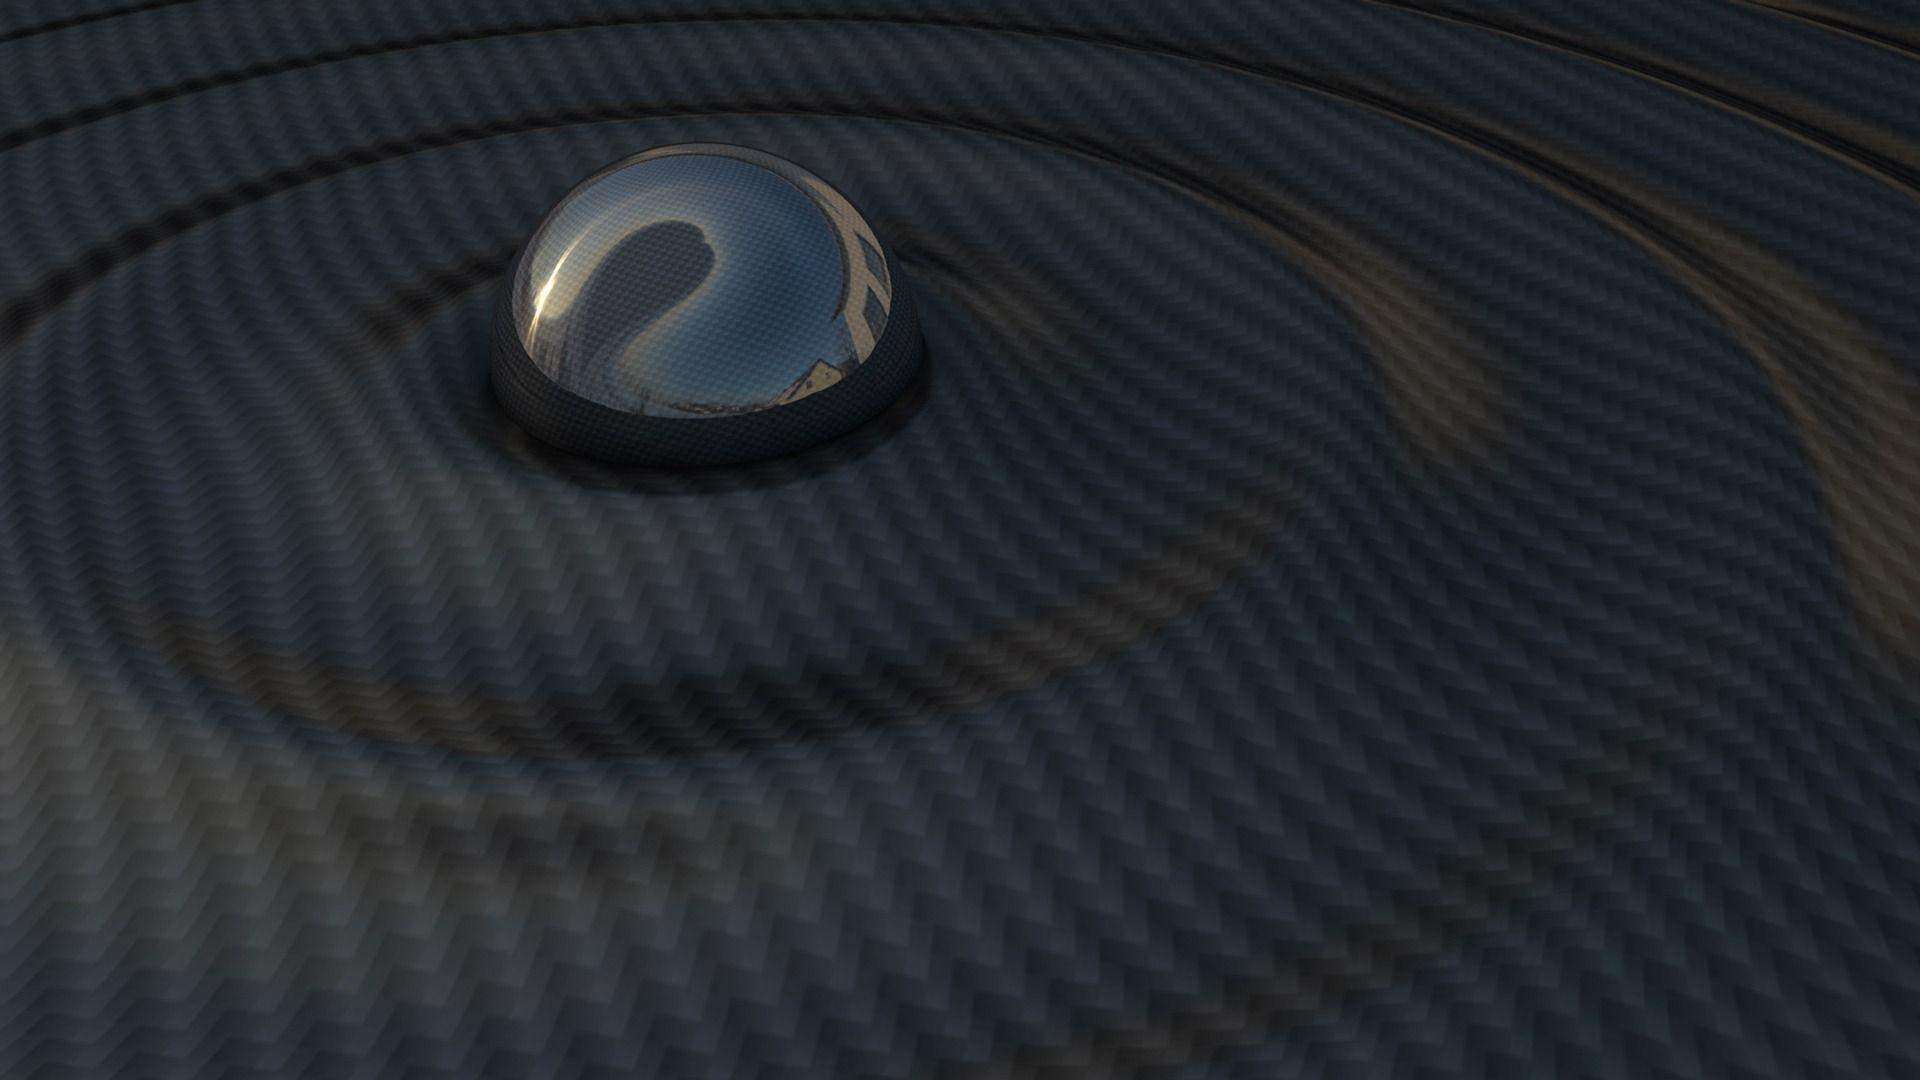 Carbon Fiber Wallpapers 1080p